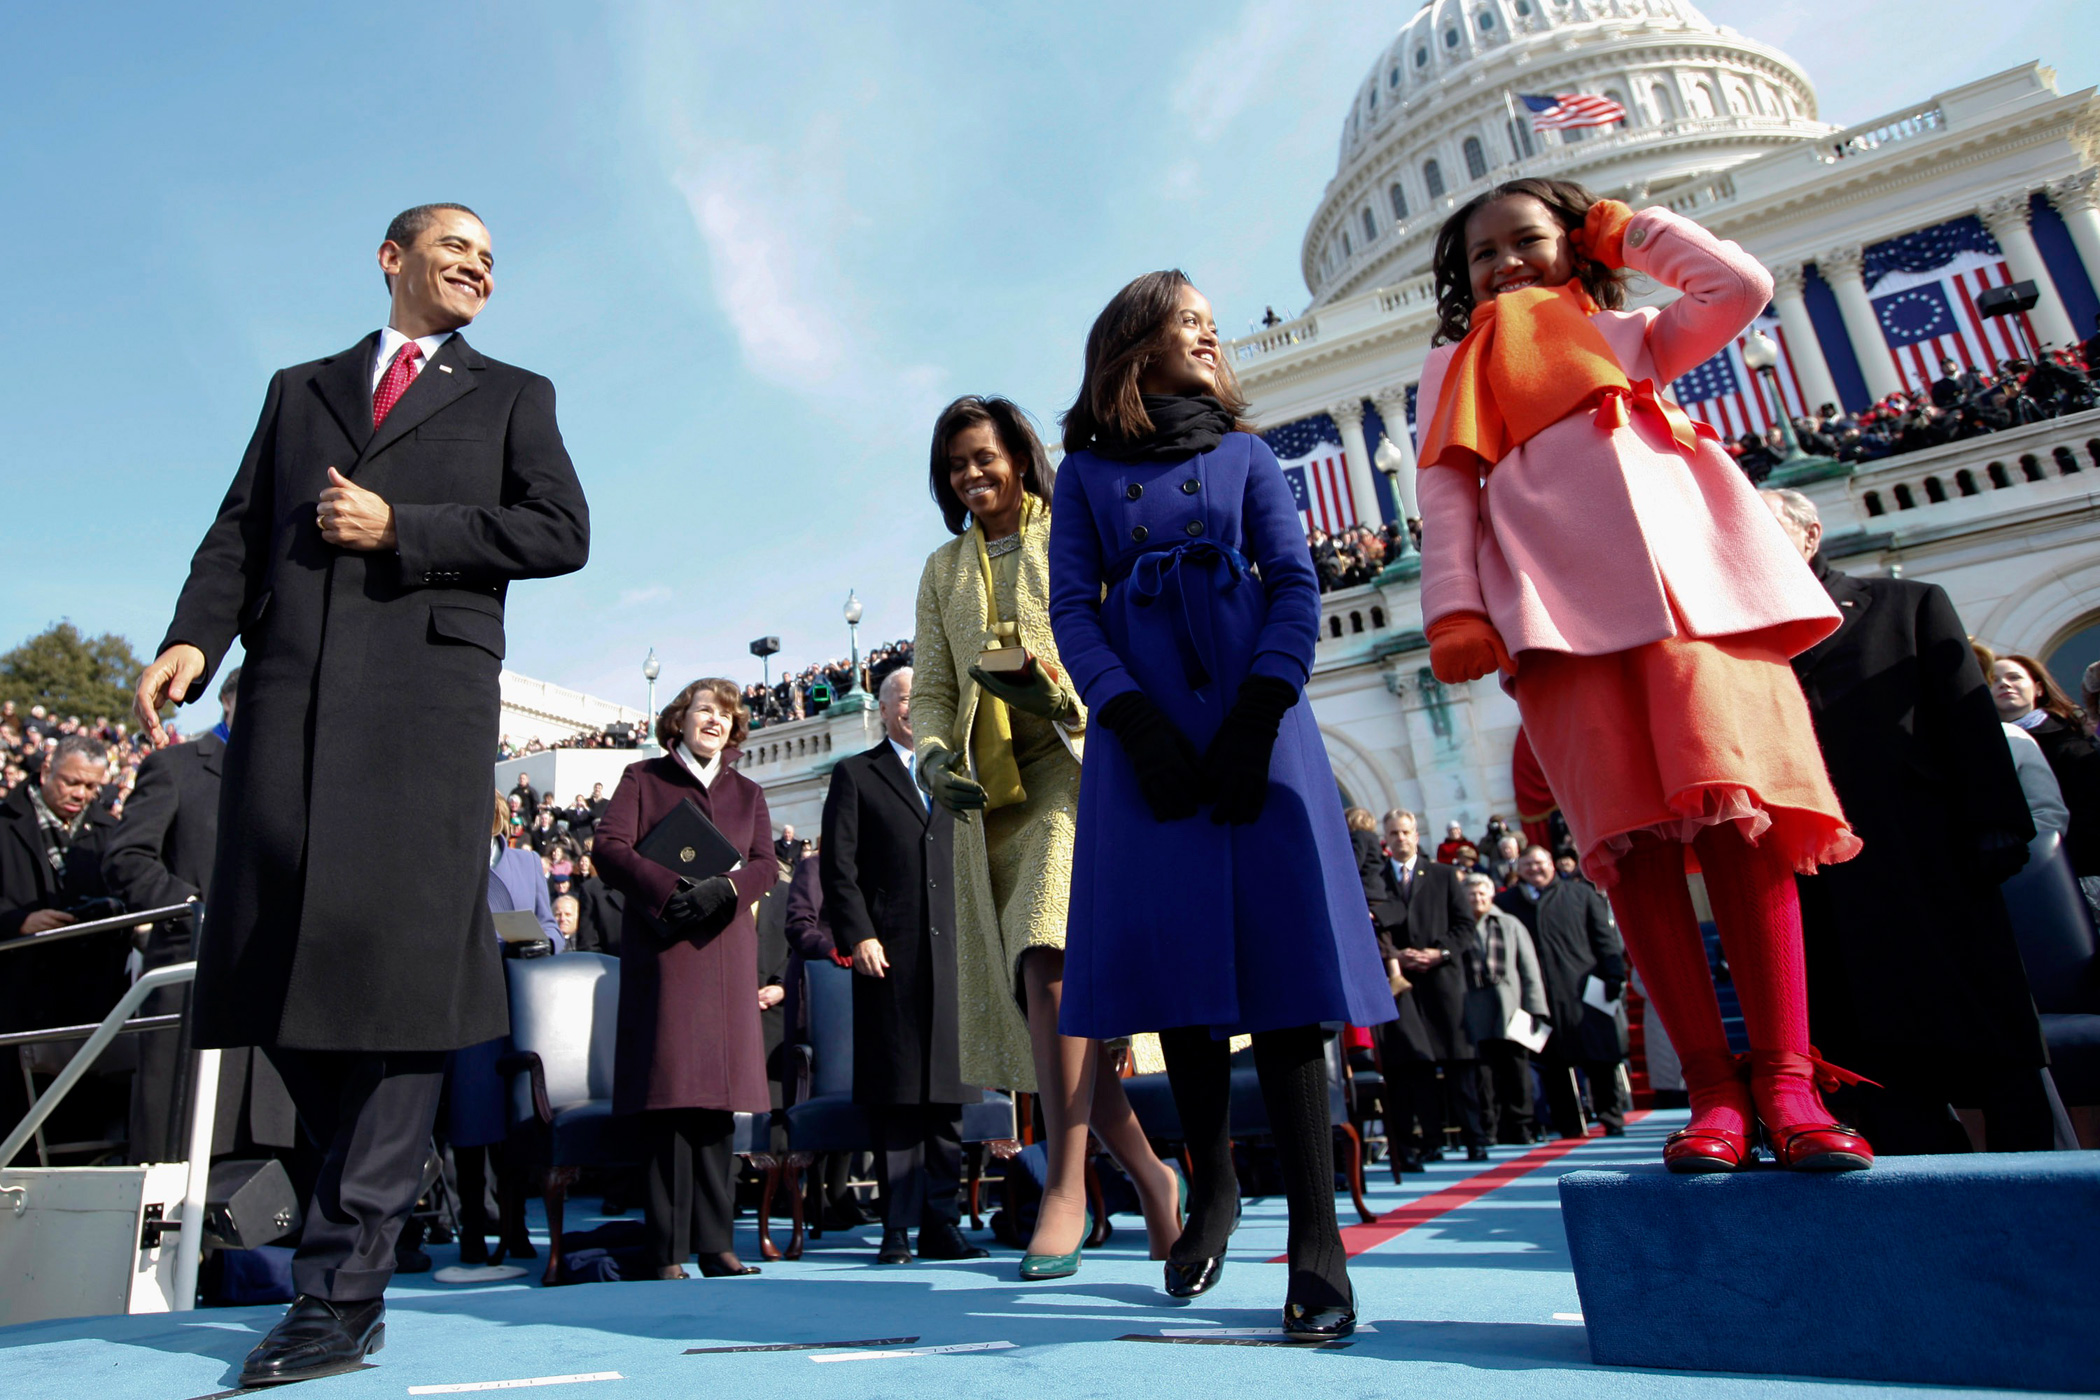 Malia Obama is graduating from the private Sidwell Friends School on Friday, growing up in the public eye of the White House.                                                              Jan. 20, 2009                                                              Then President-elect Barack Obama, his wife Michelle and daughters Sasha, right and Malia, on the podium moments before Obama was sworn in as the 44th president at the U.S. Capitol in Washington. Malia, 10, wore a double-breasted periwinkle-blue coat with a blue-ribbon bow at the waist from Crewcuts by J. Crew.